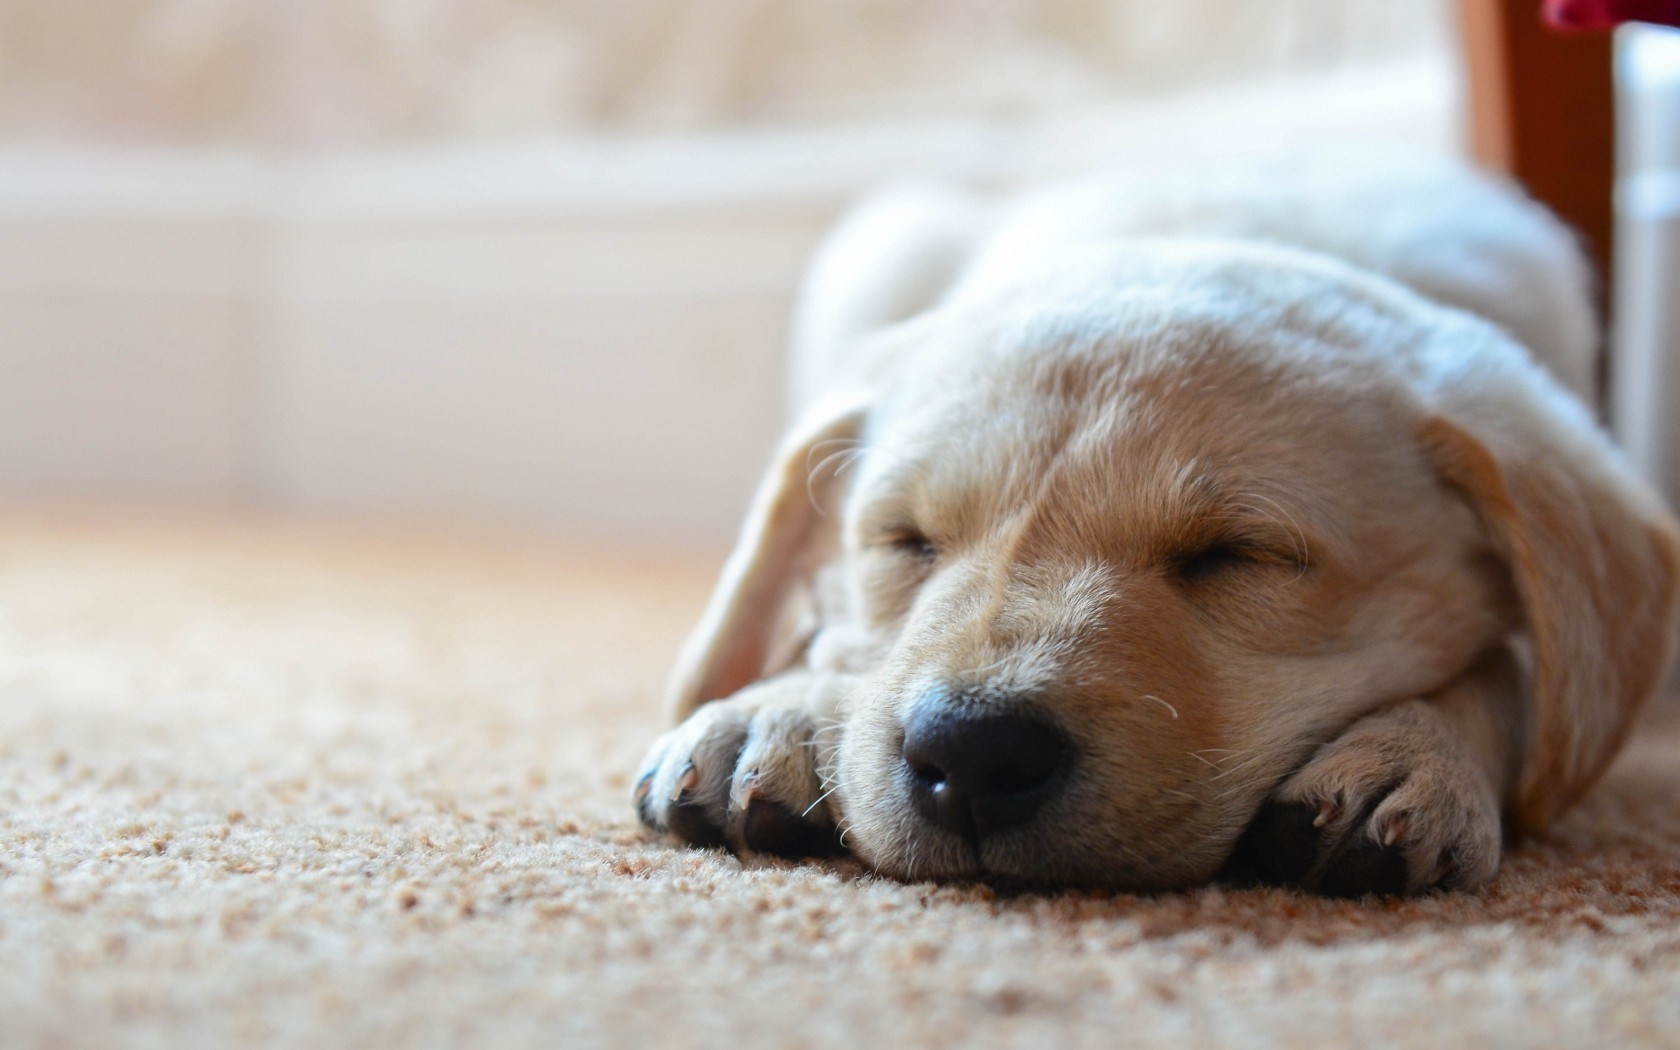 Dogs Sleeping Wallpaper High Definition High Quality